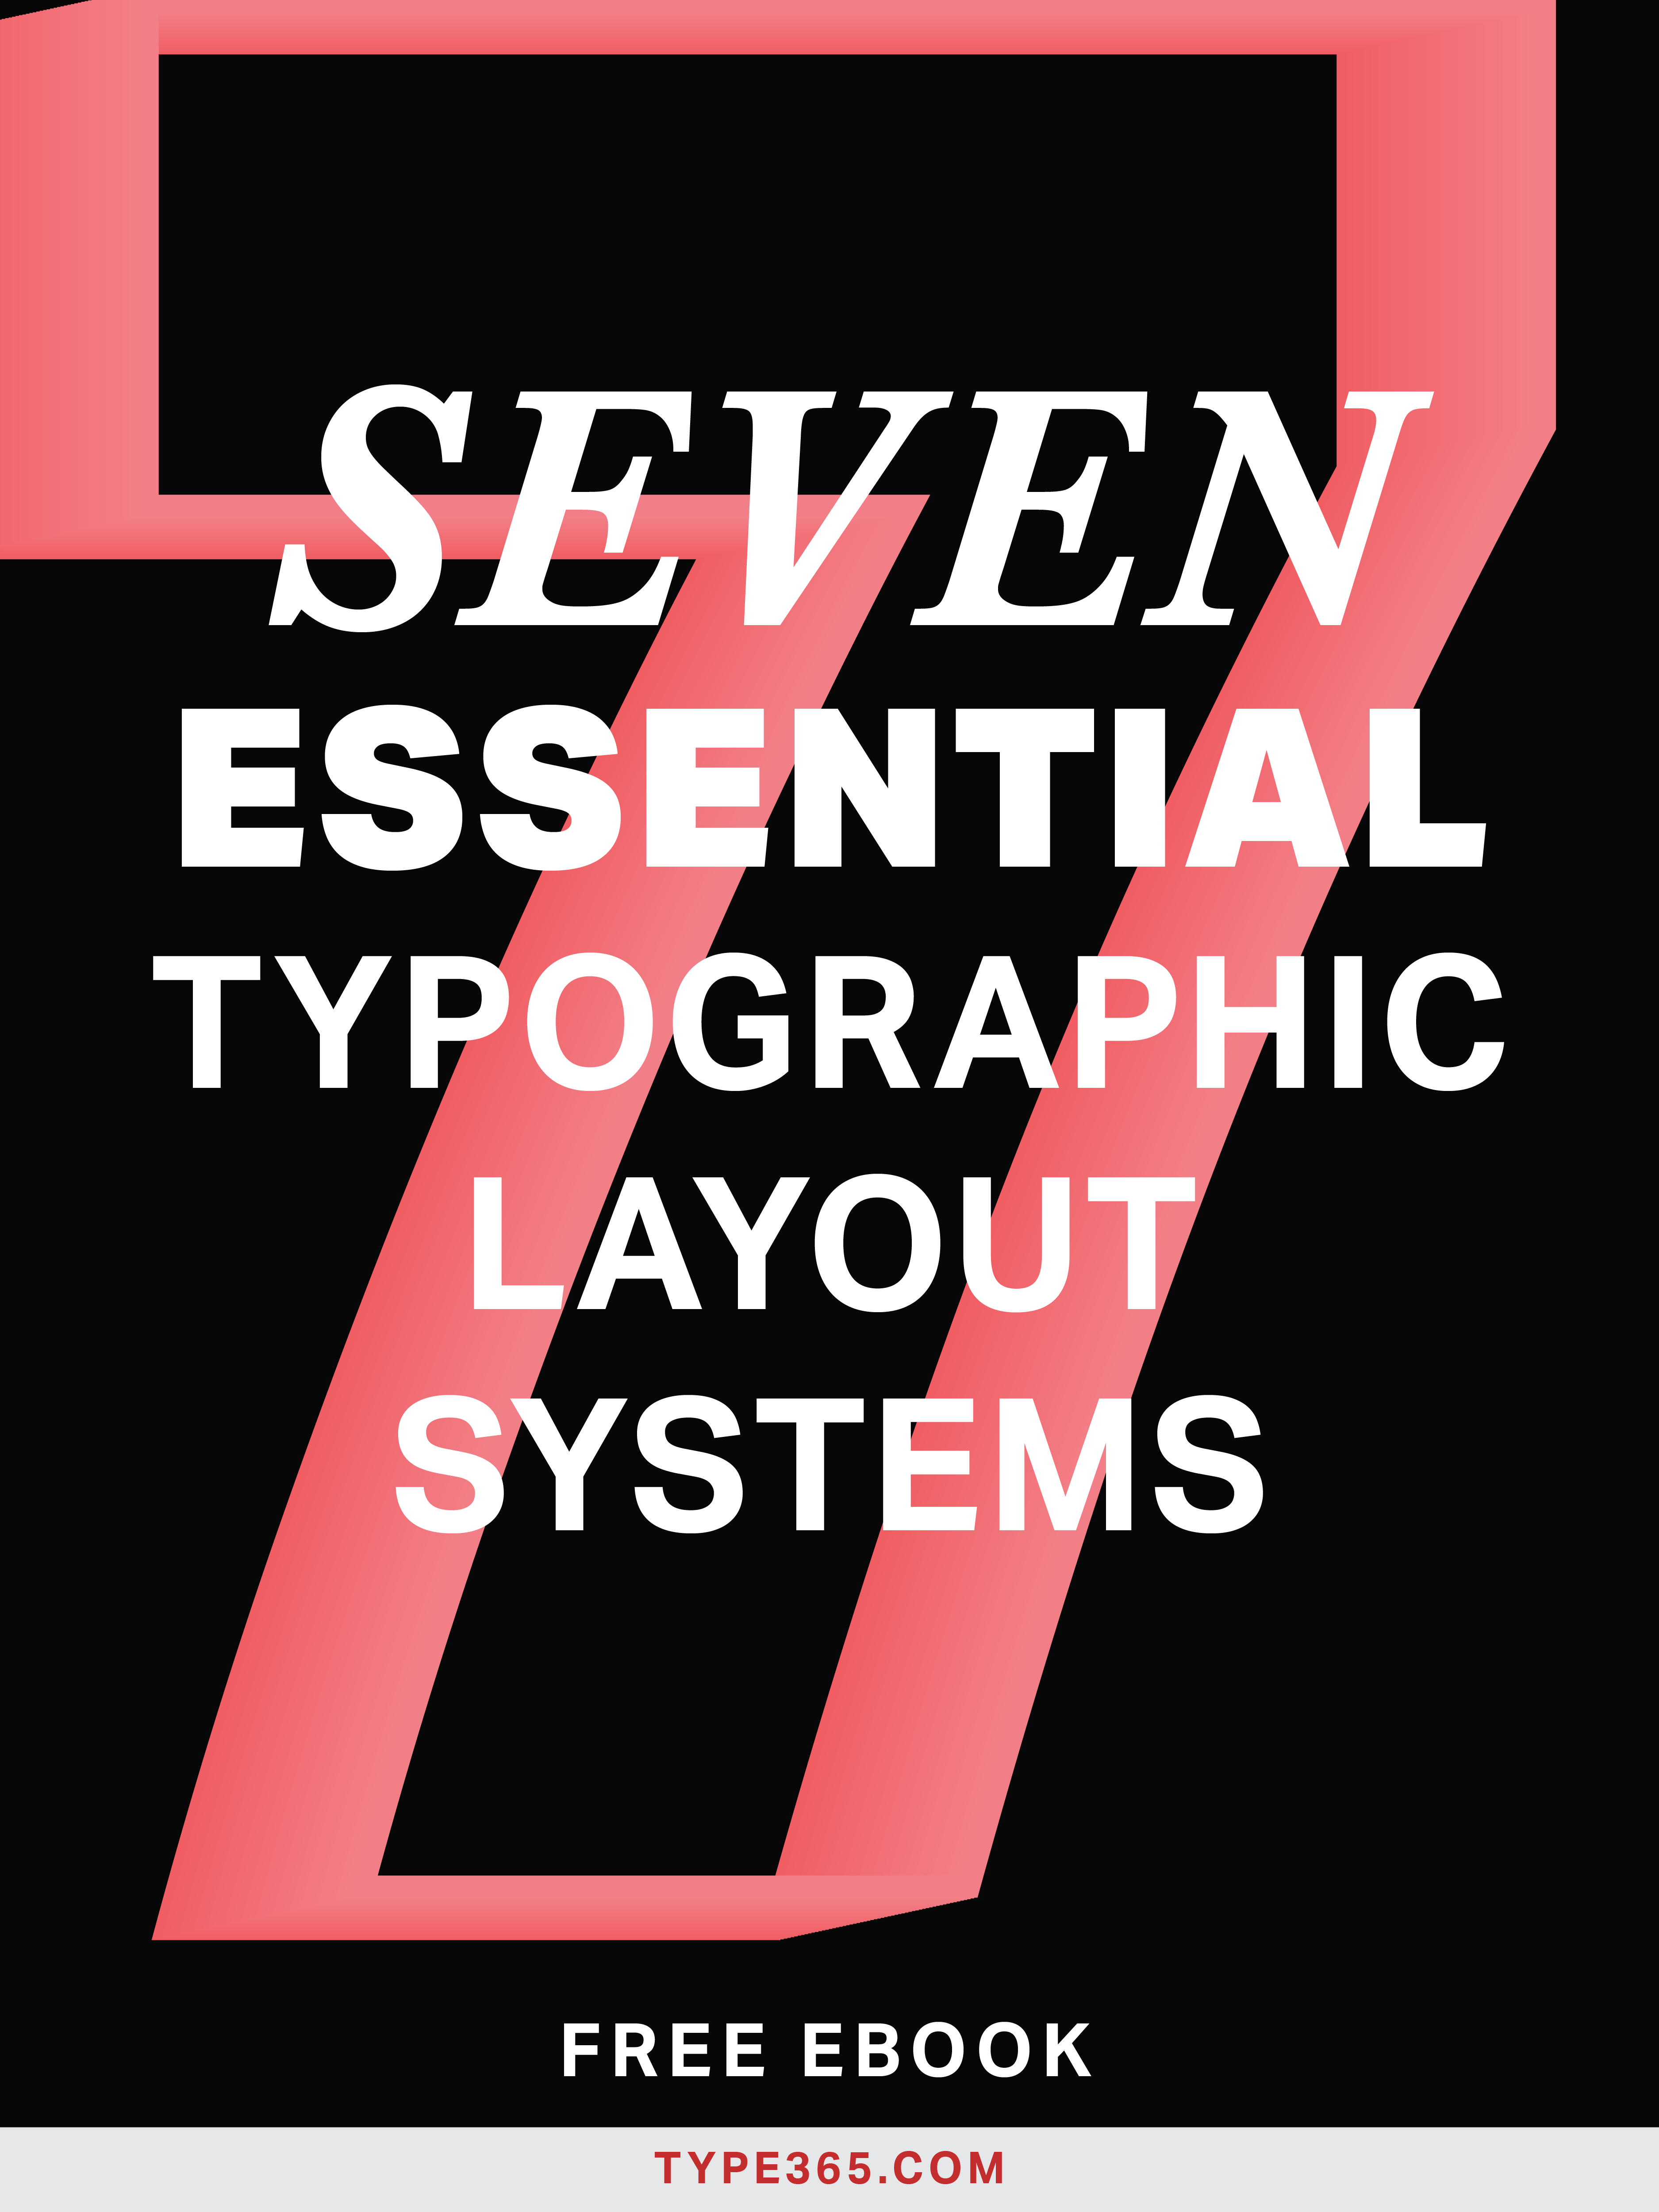 99% of designs use the same two layouts–and link most defaults, they're started to get really old. In reality, there are seven essential layout systems. Learn them all and make designs that stand out from the crowd. Learn more and download 7 Essential Typographic Layout Systems.